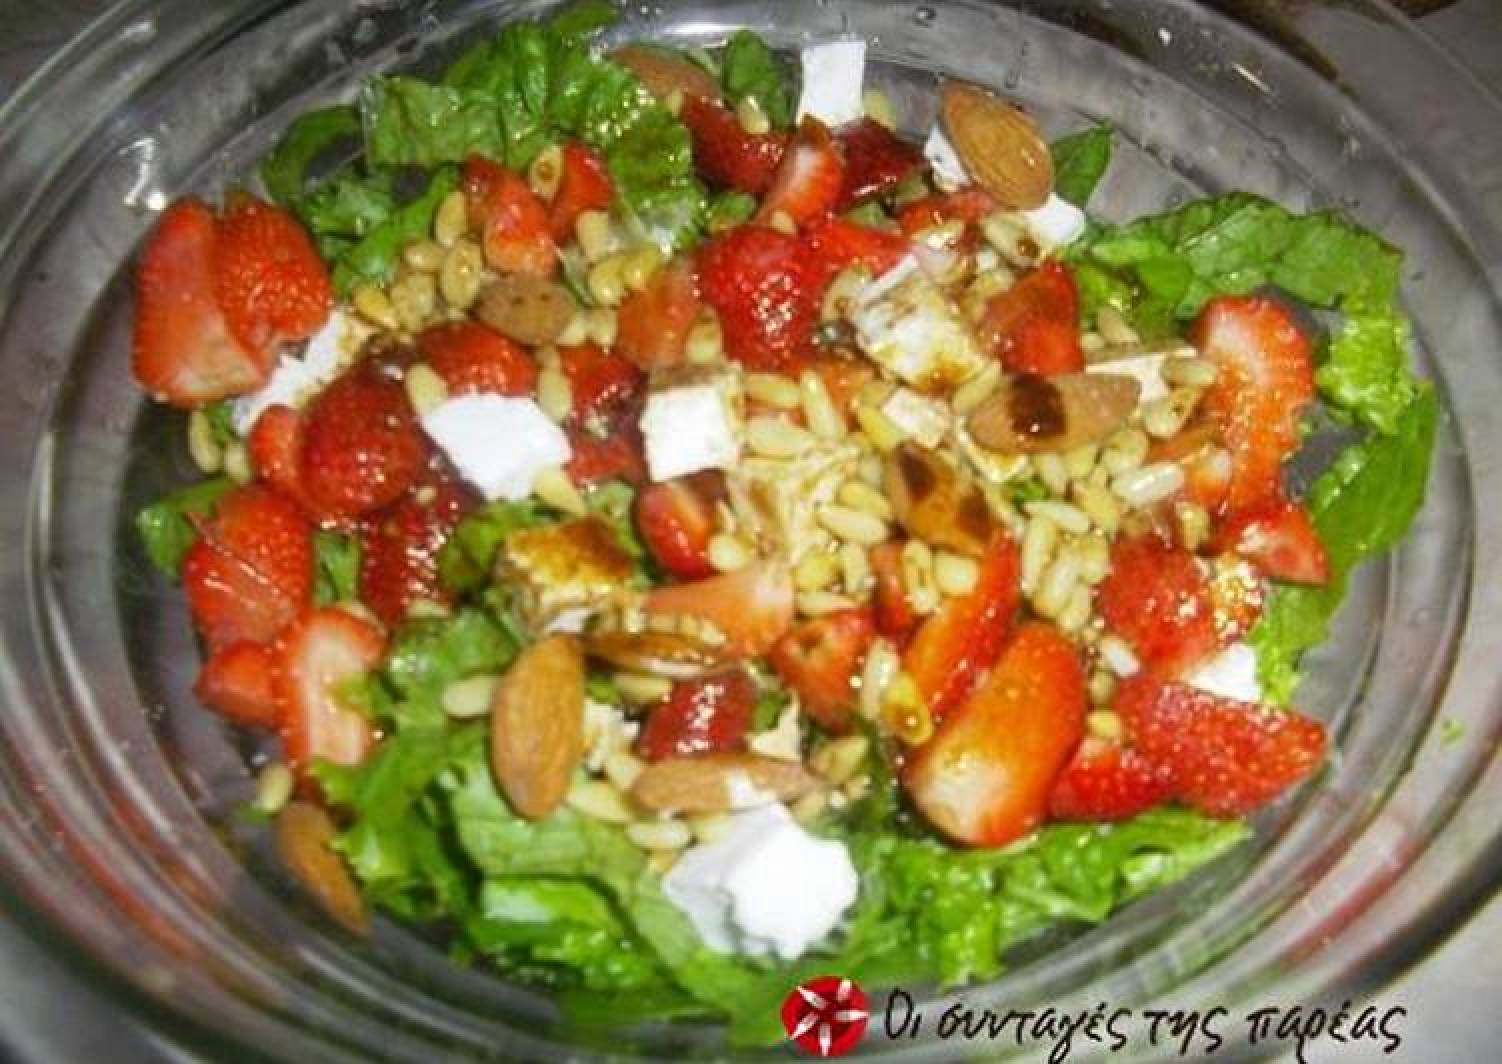 Salad with strawberries and feta cheese